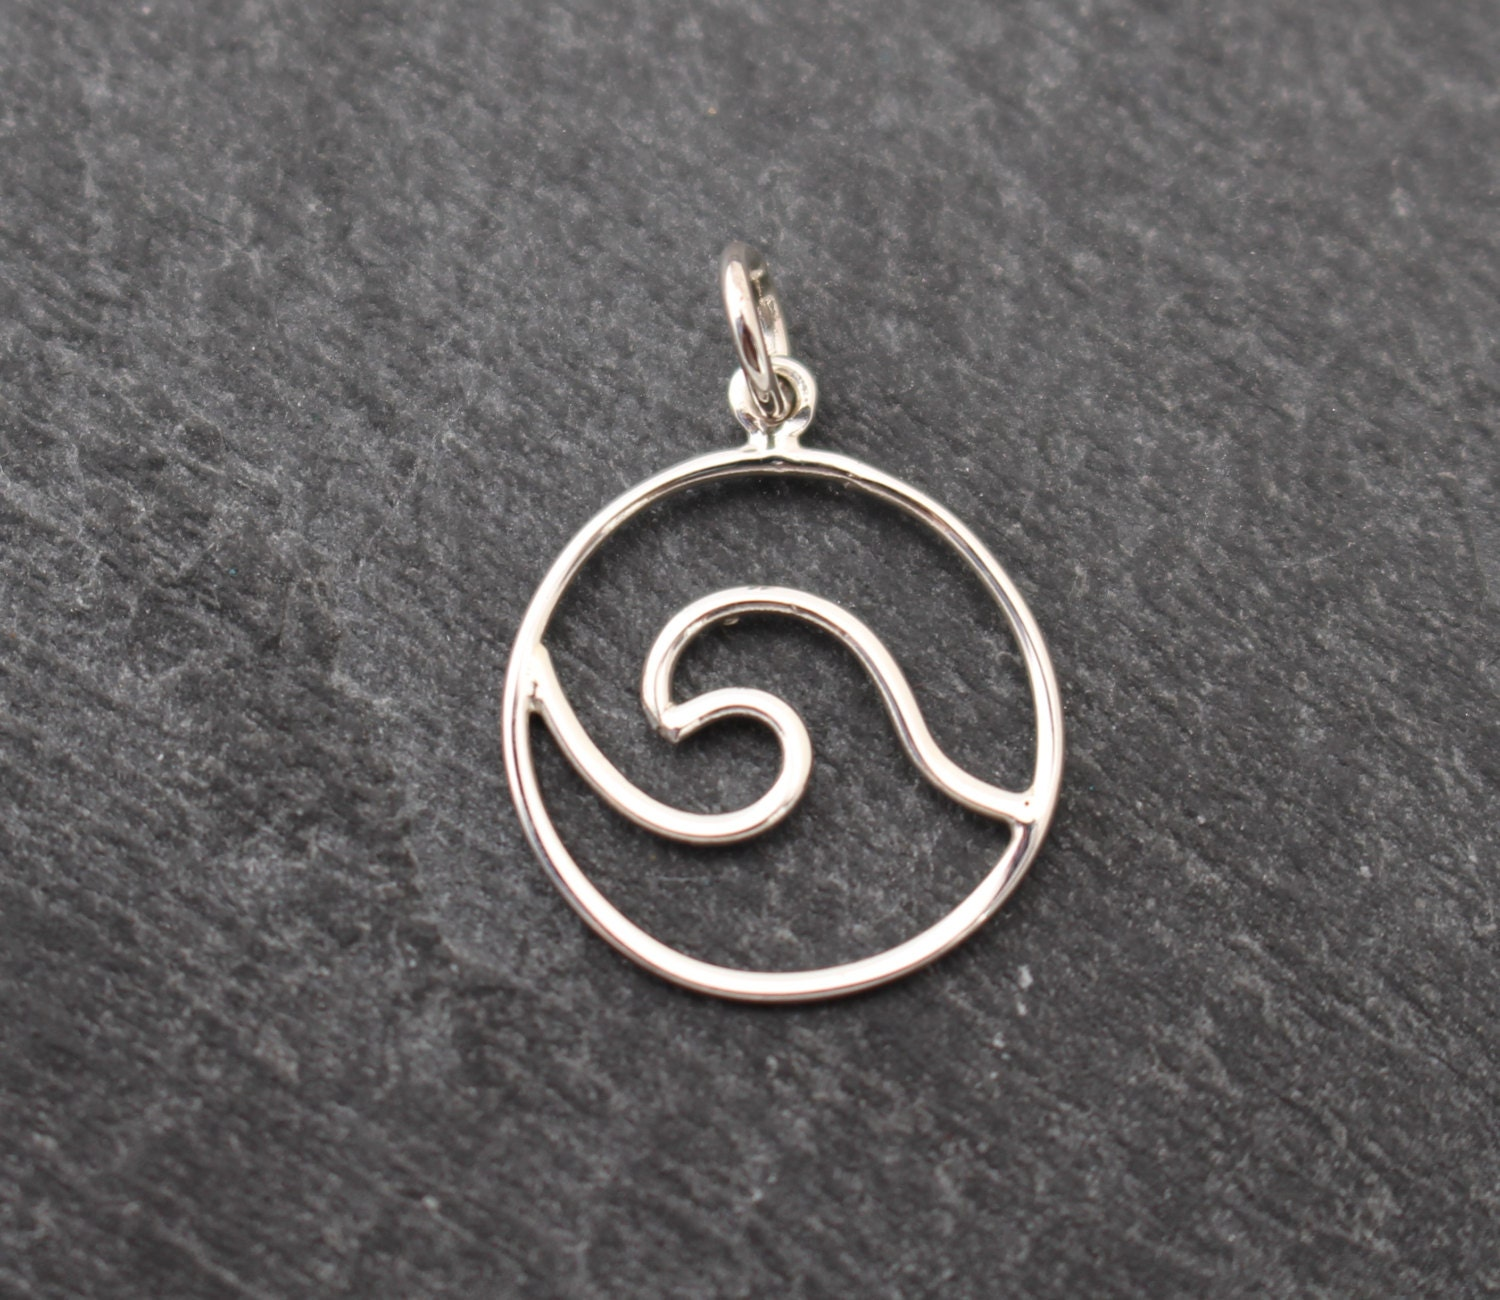 tosa unique charm by products frt fine gold ocean silver wave circle usa jewelry or handmade pendant in sterling